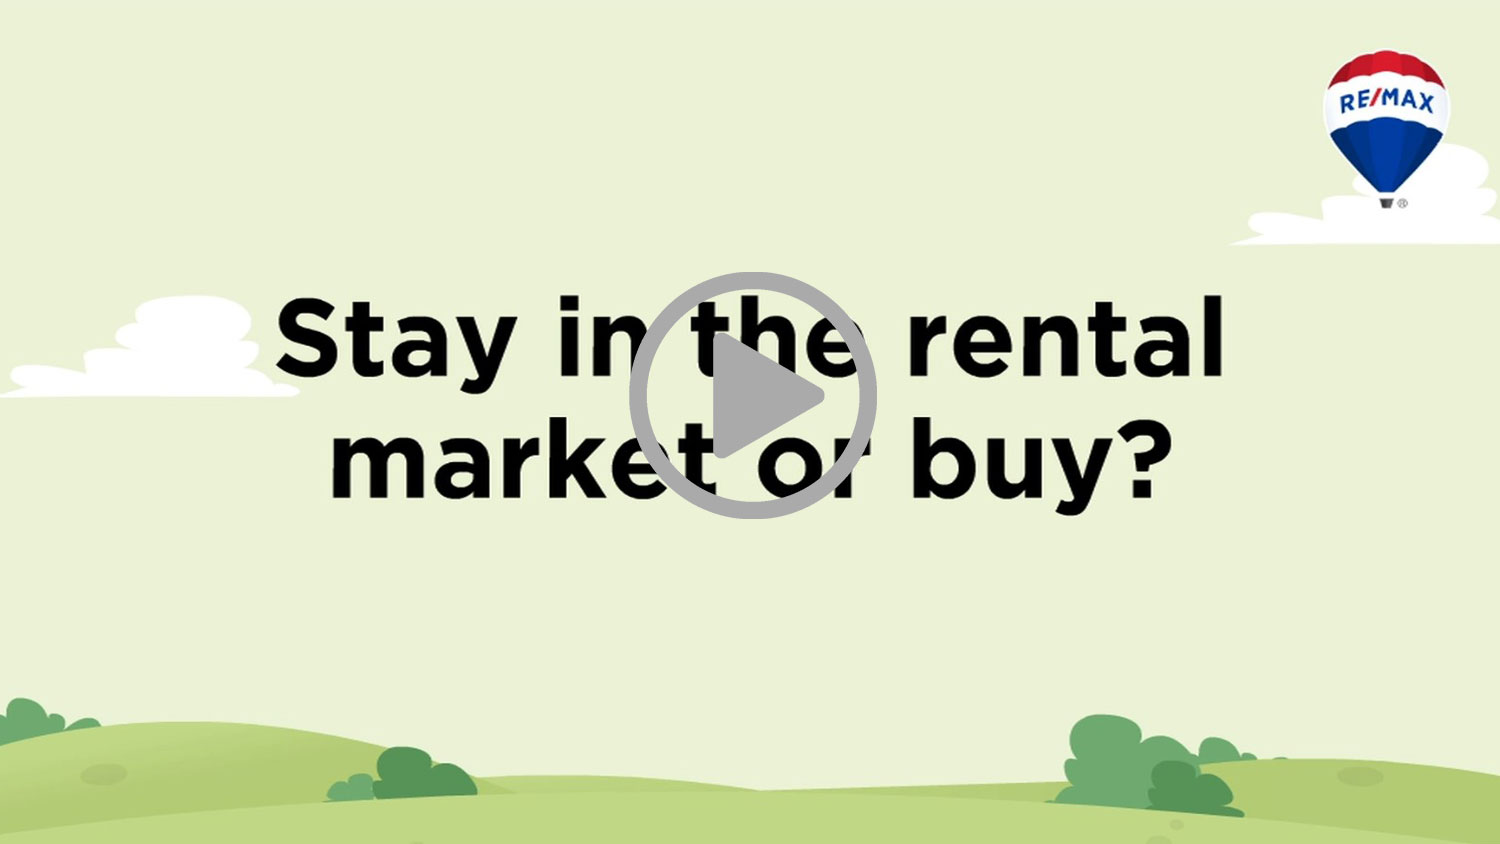 STAY IN THE RENTAL MARKET OR BUY?